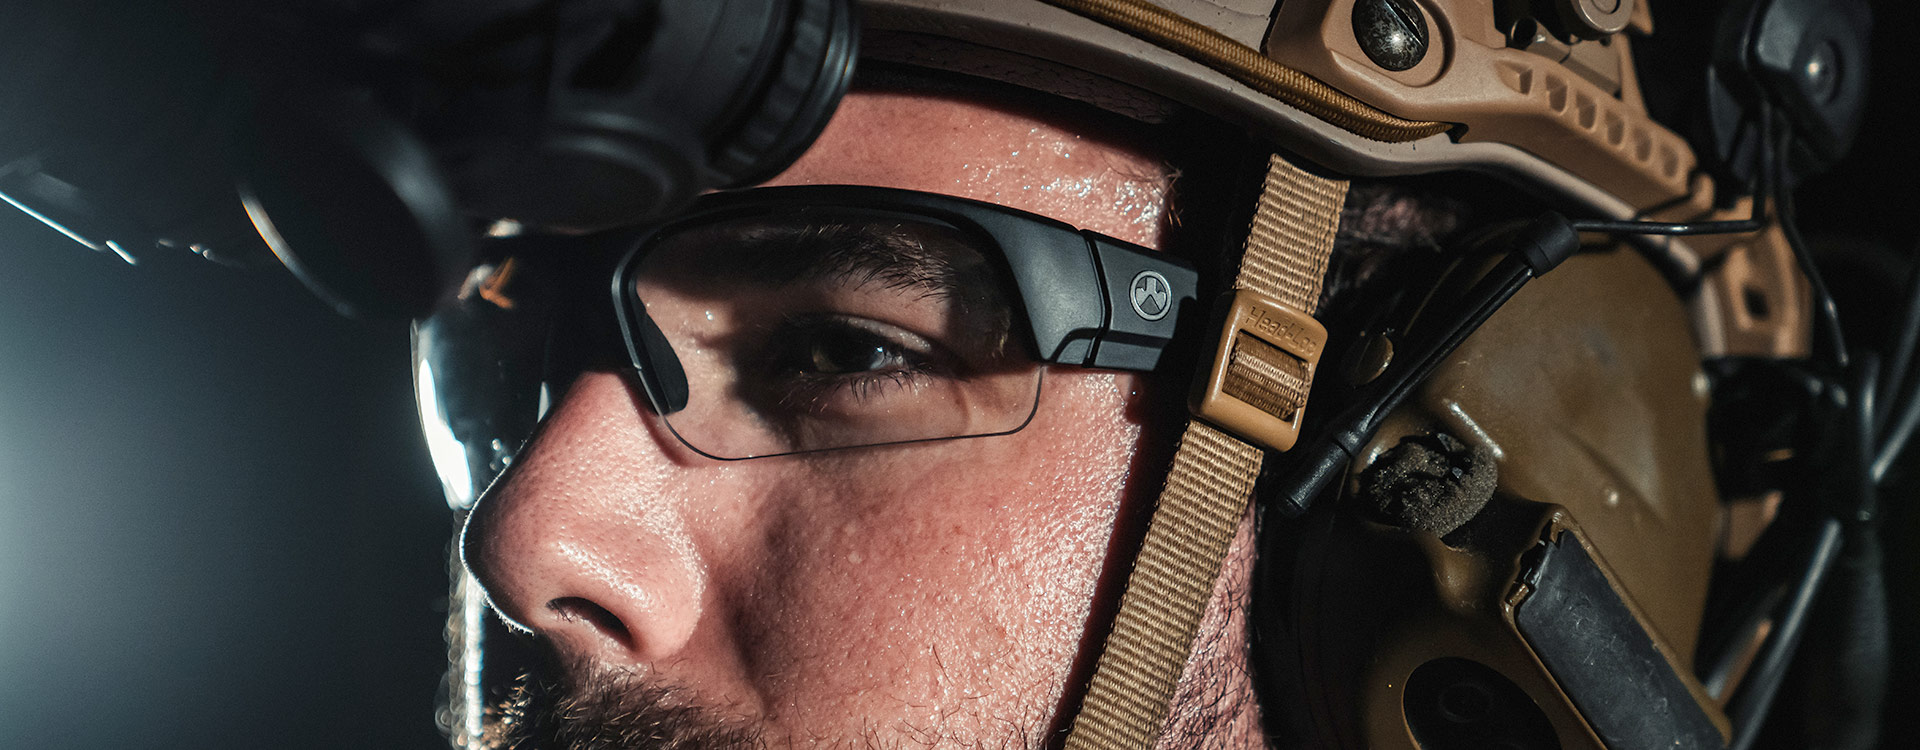 Lit nighttime image of Magpul Helix Eyewear, Black Frame, Clear Lens on a man with ear-pro, helmet, and night vision